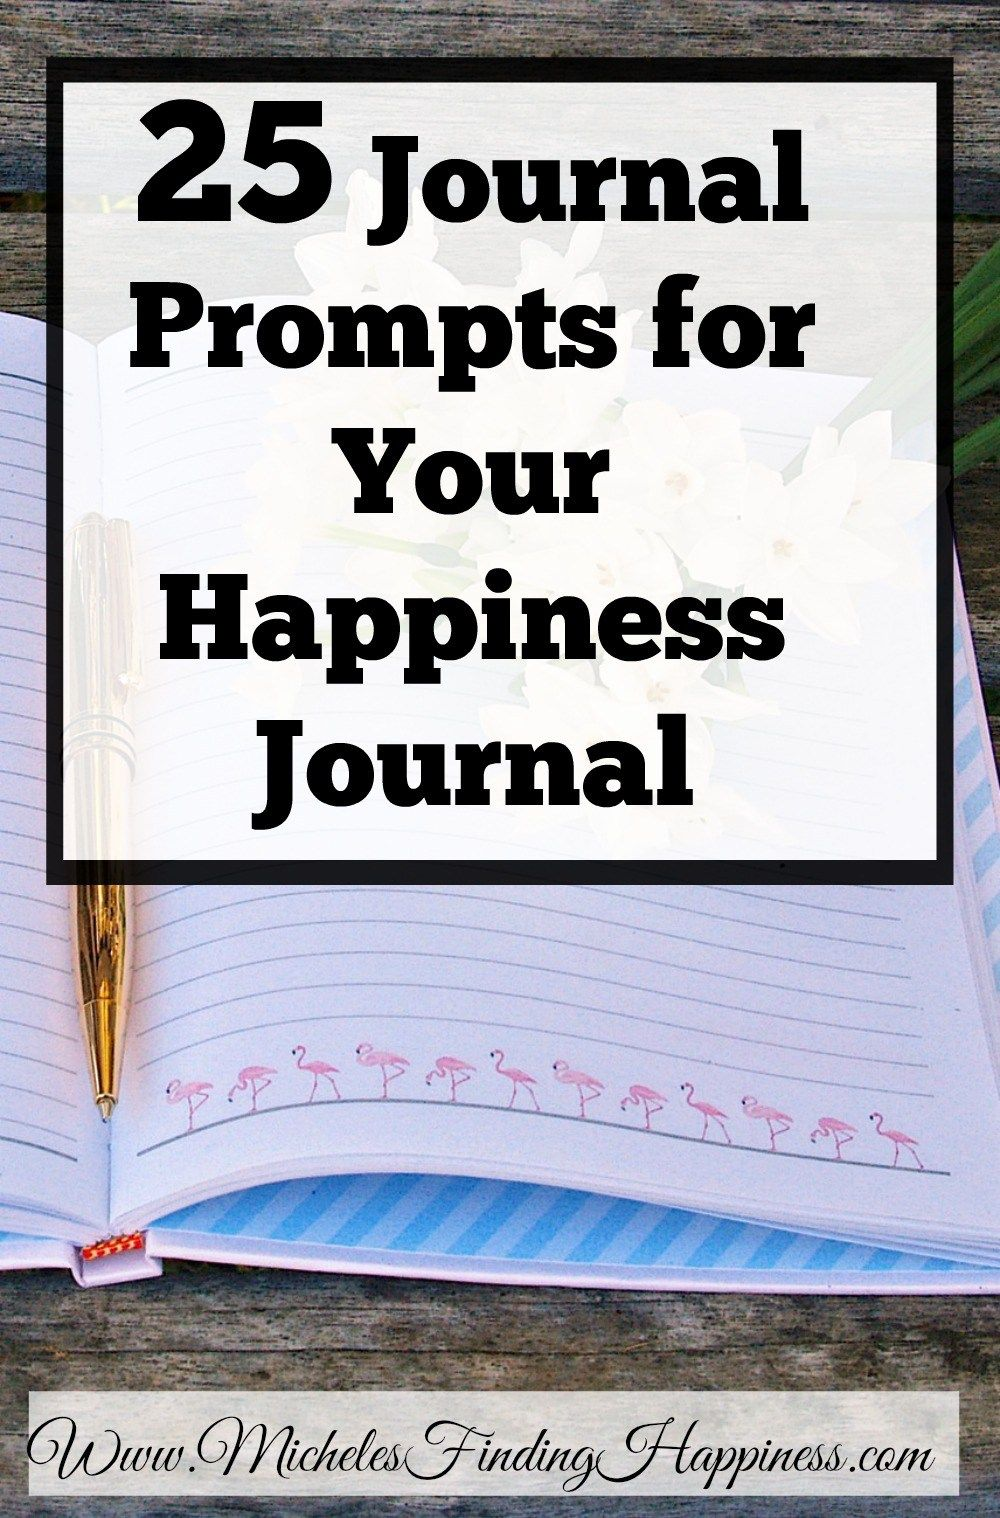 25 journal prompts for your happiness journal